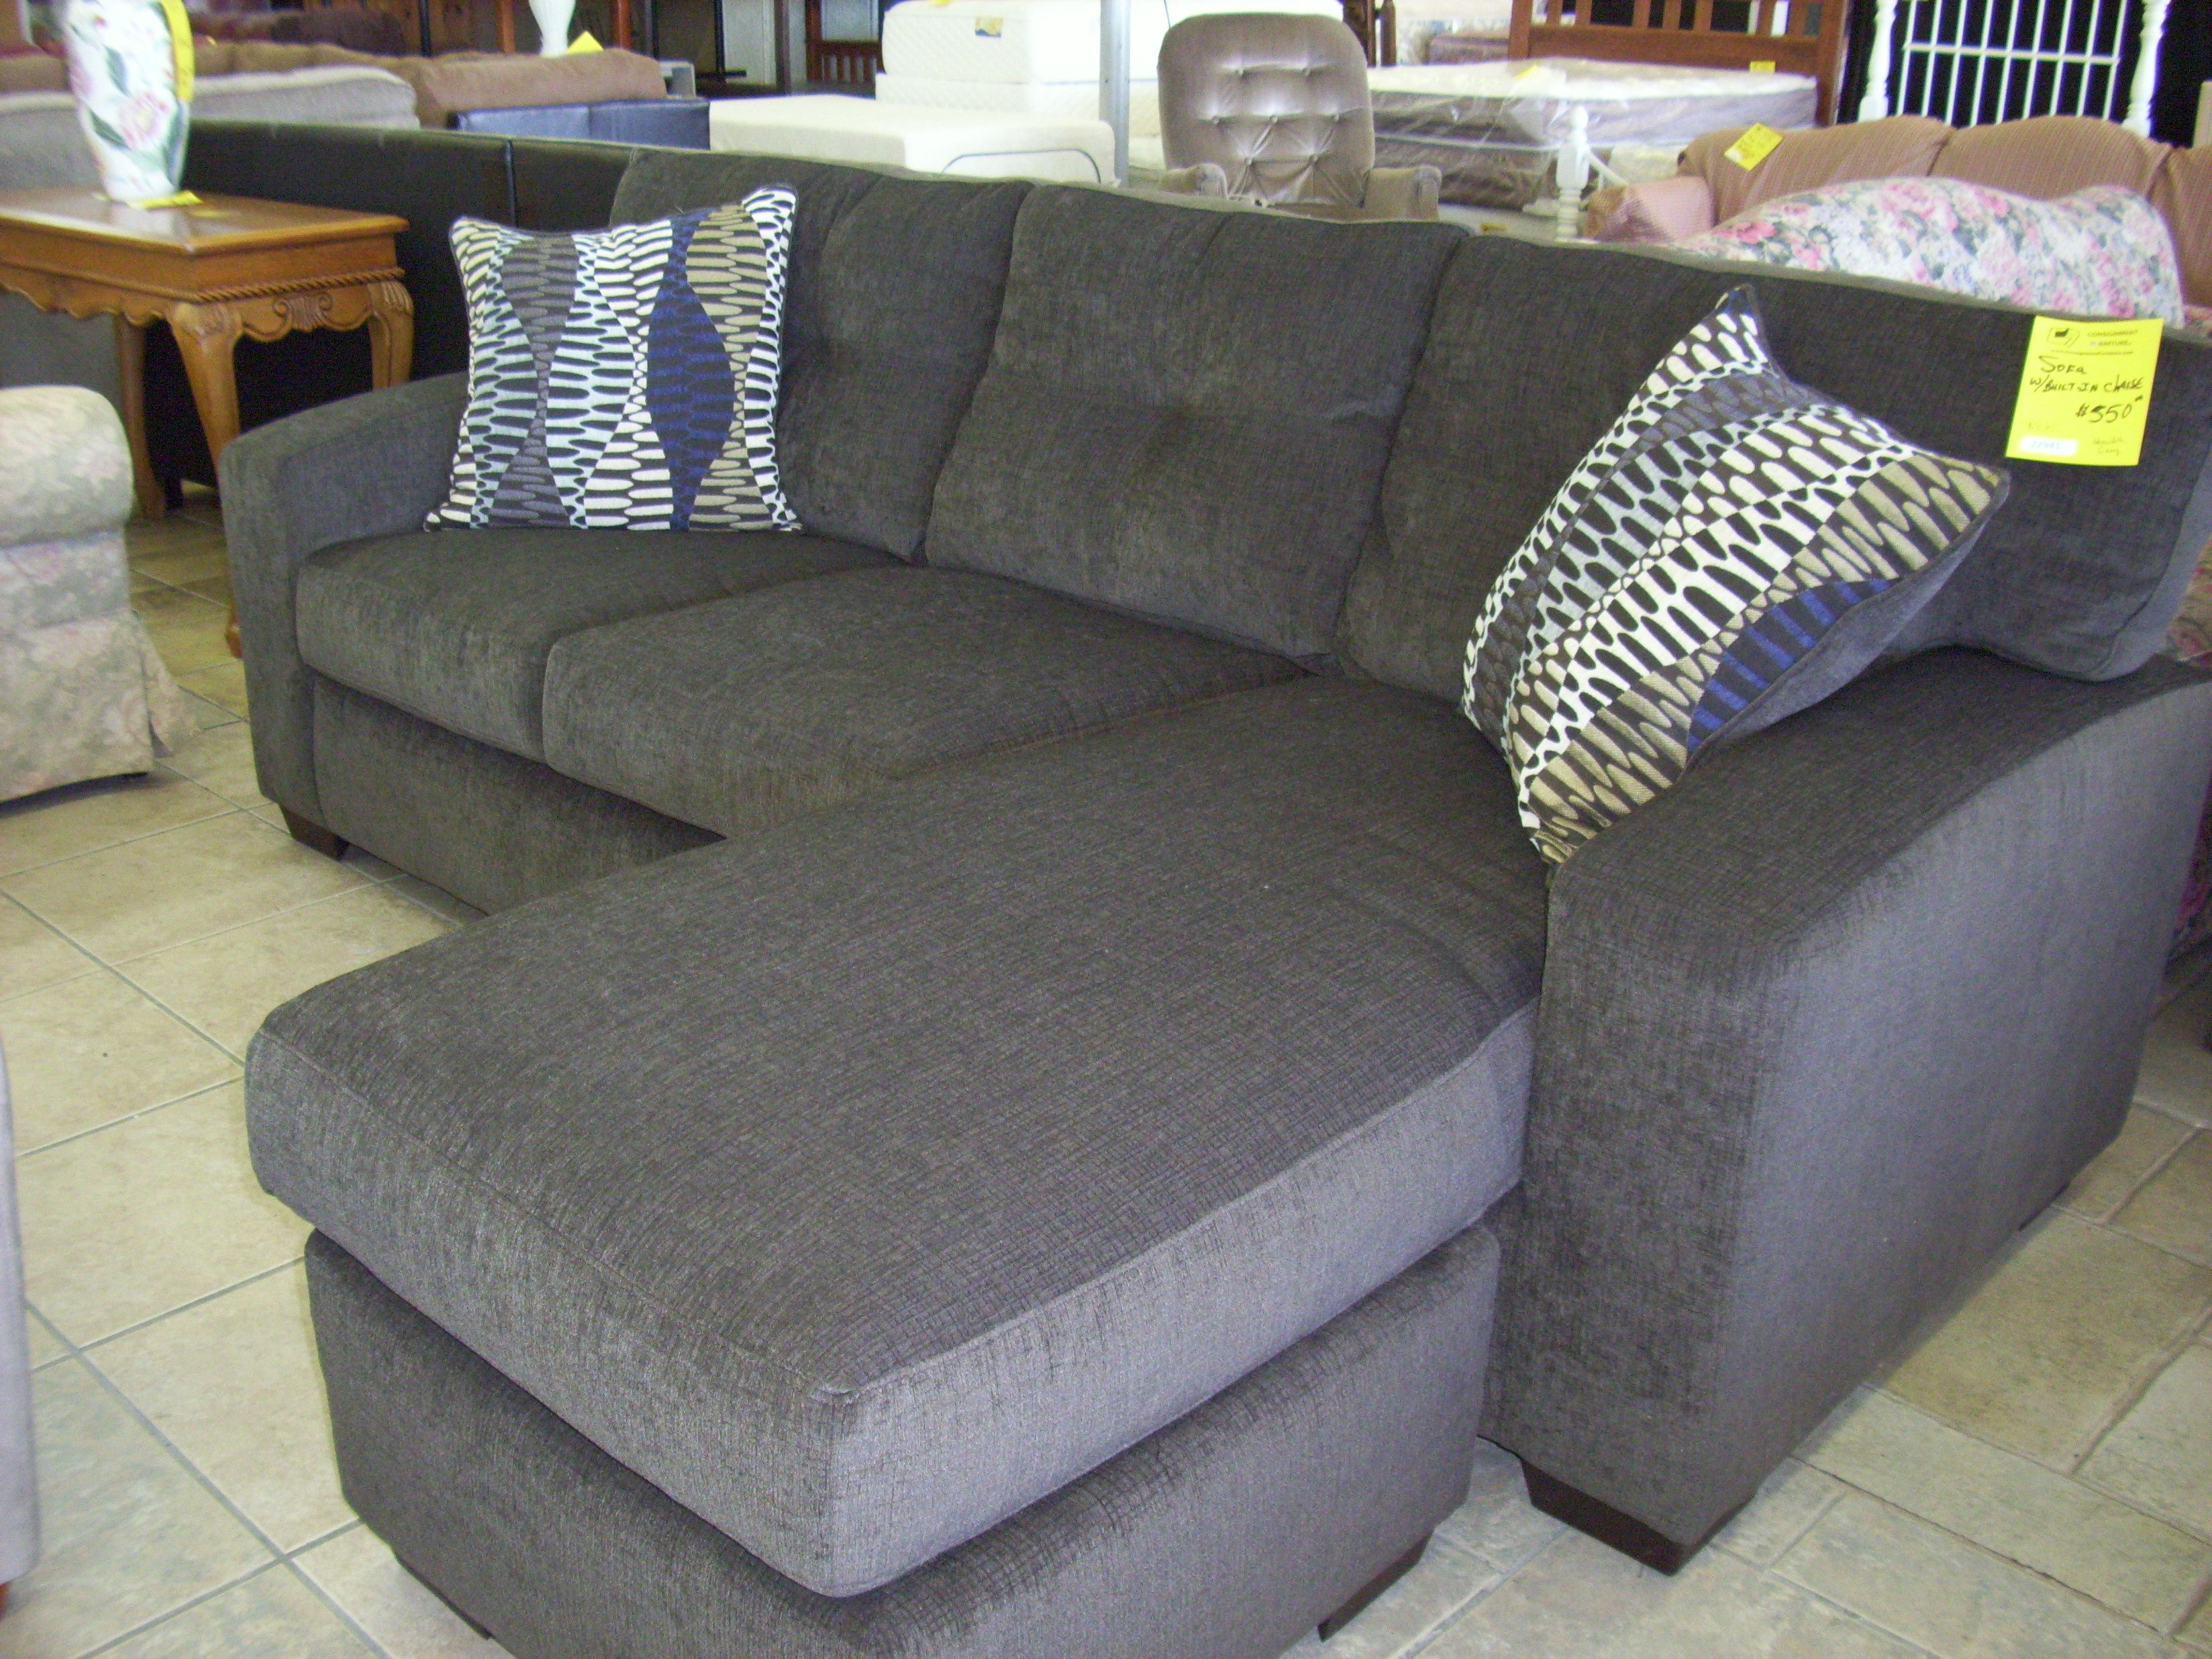 Exquisite Sectional L Shaped Fabric Gray Sofa With Chaise Sleeper And Cushions As Decorate Modern Living Areas Furniture Ideas